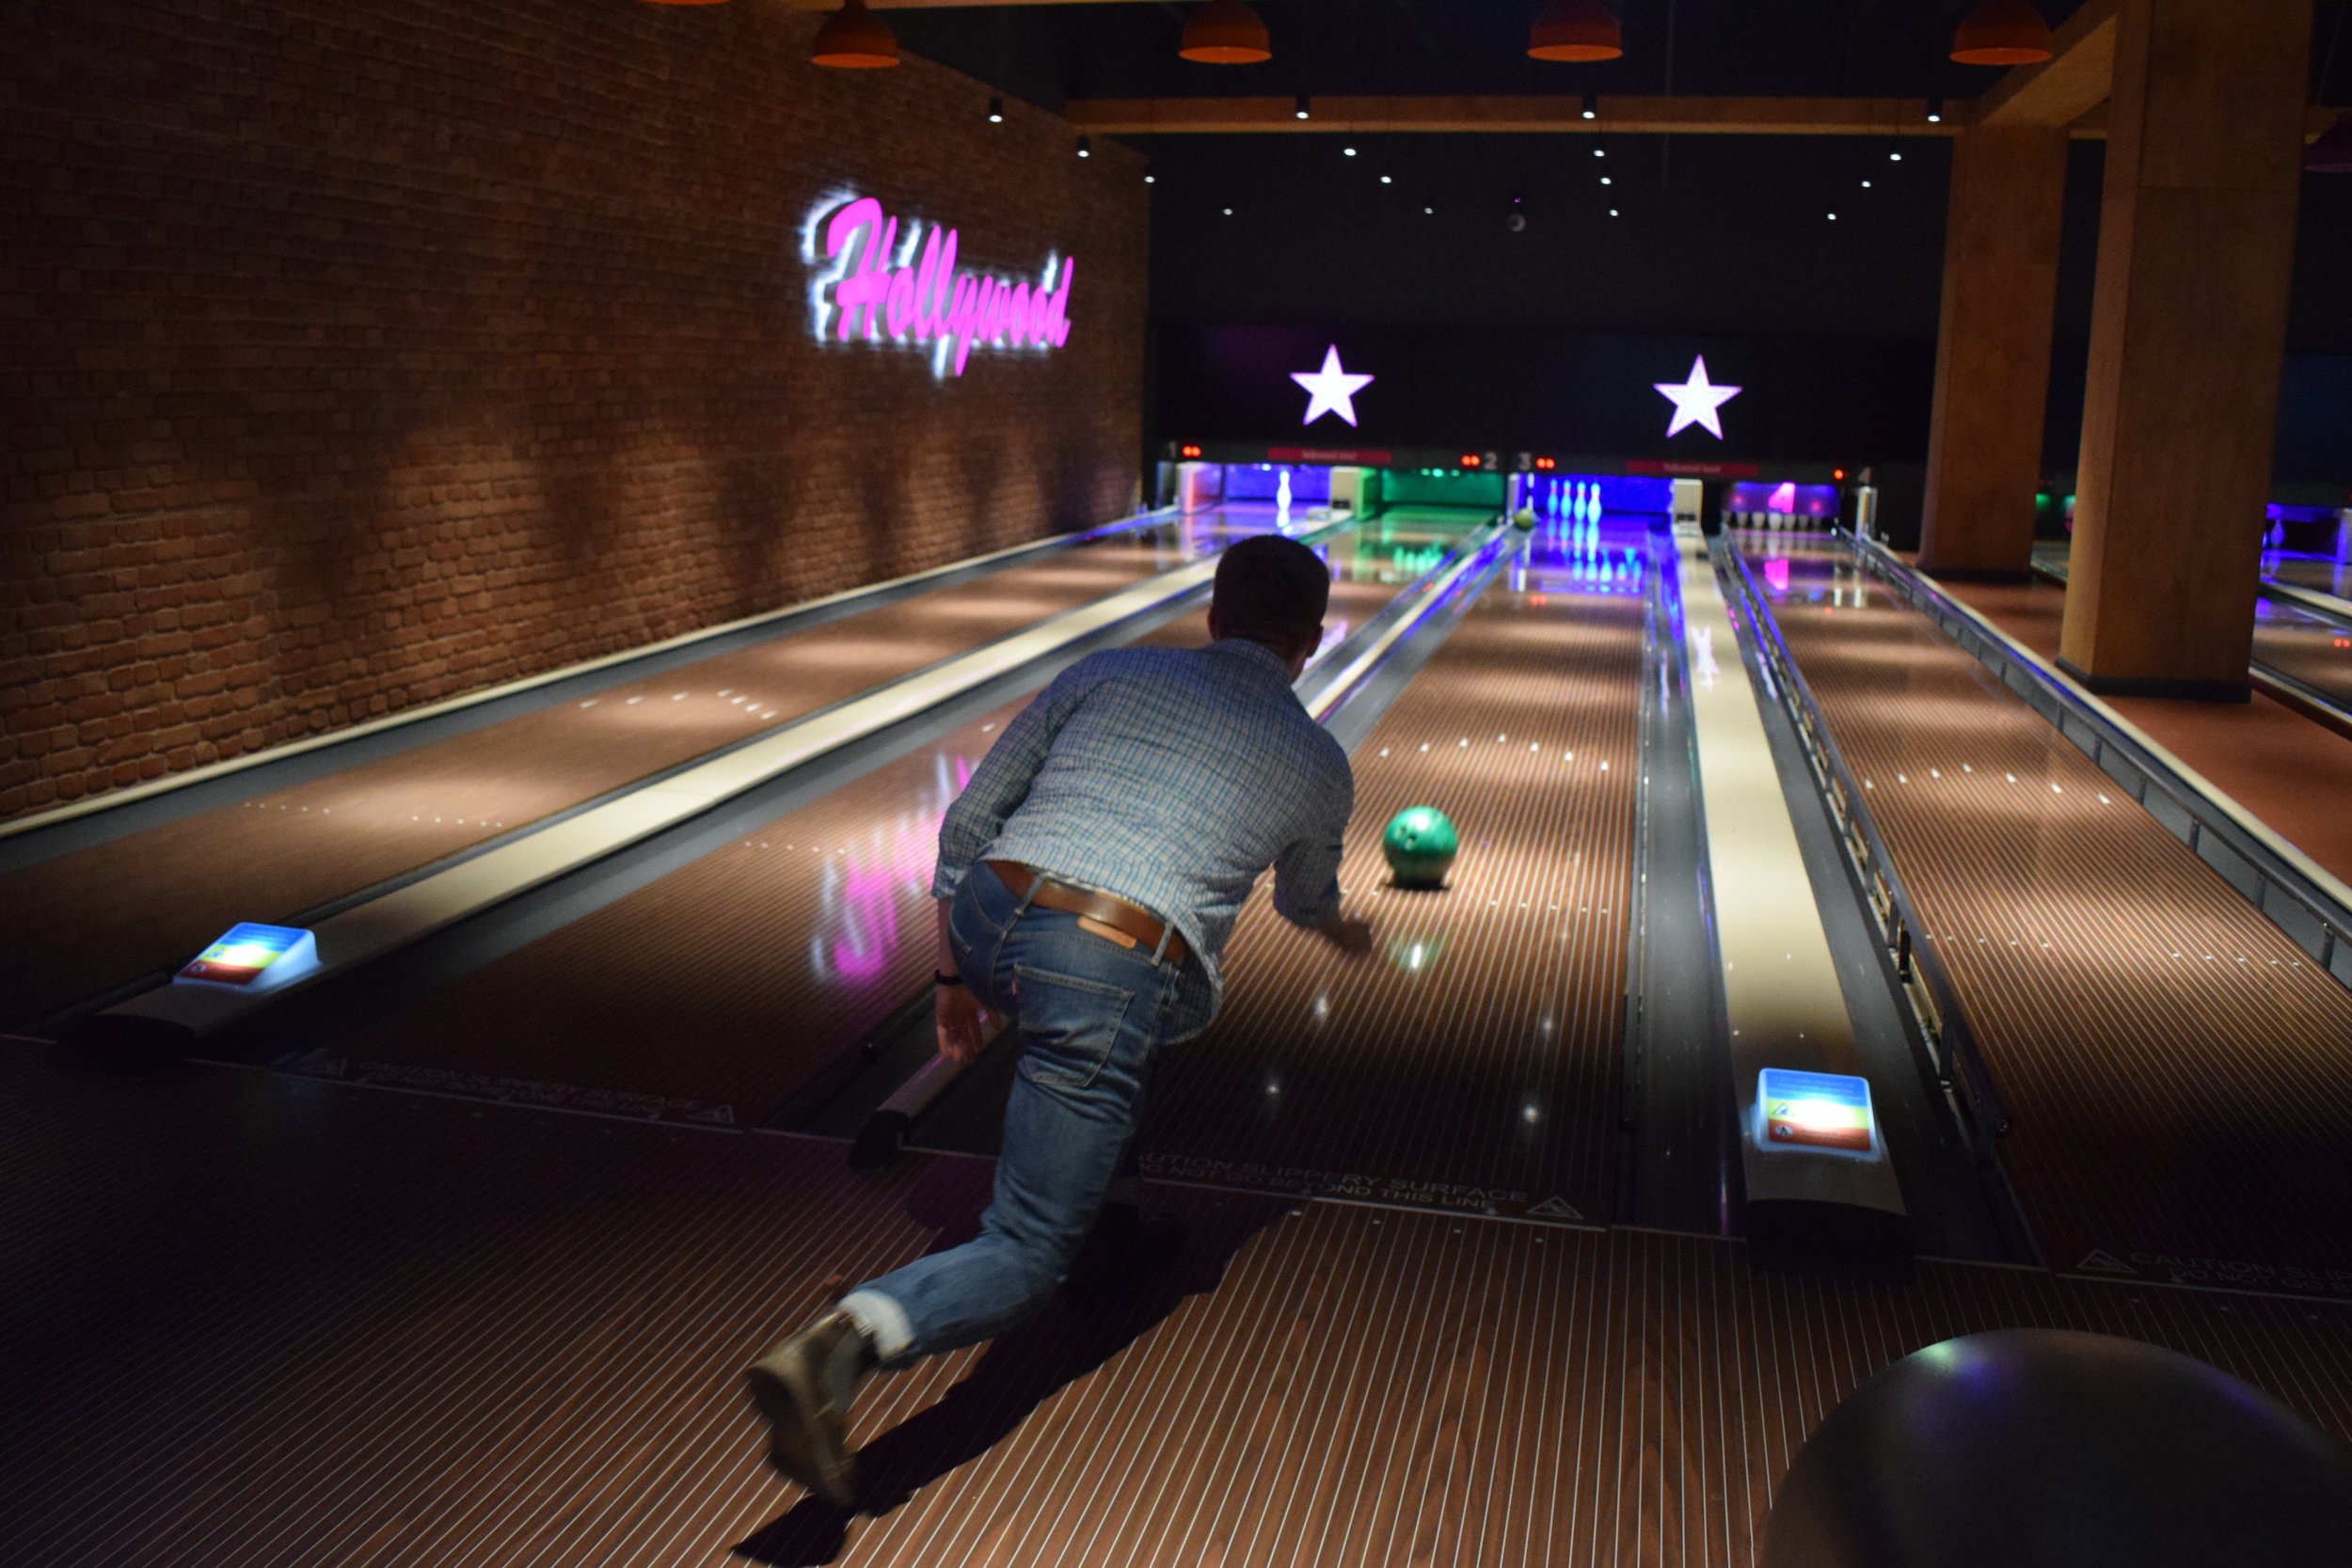 Bowling at Hollywood Bowl, Intu Watford